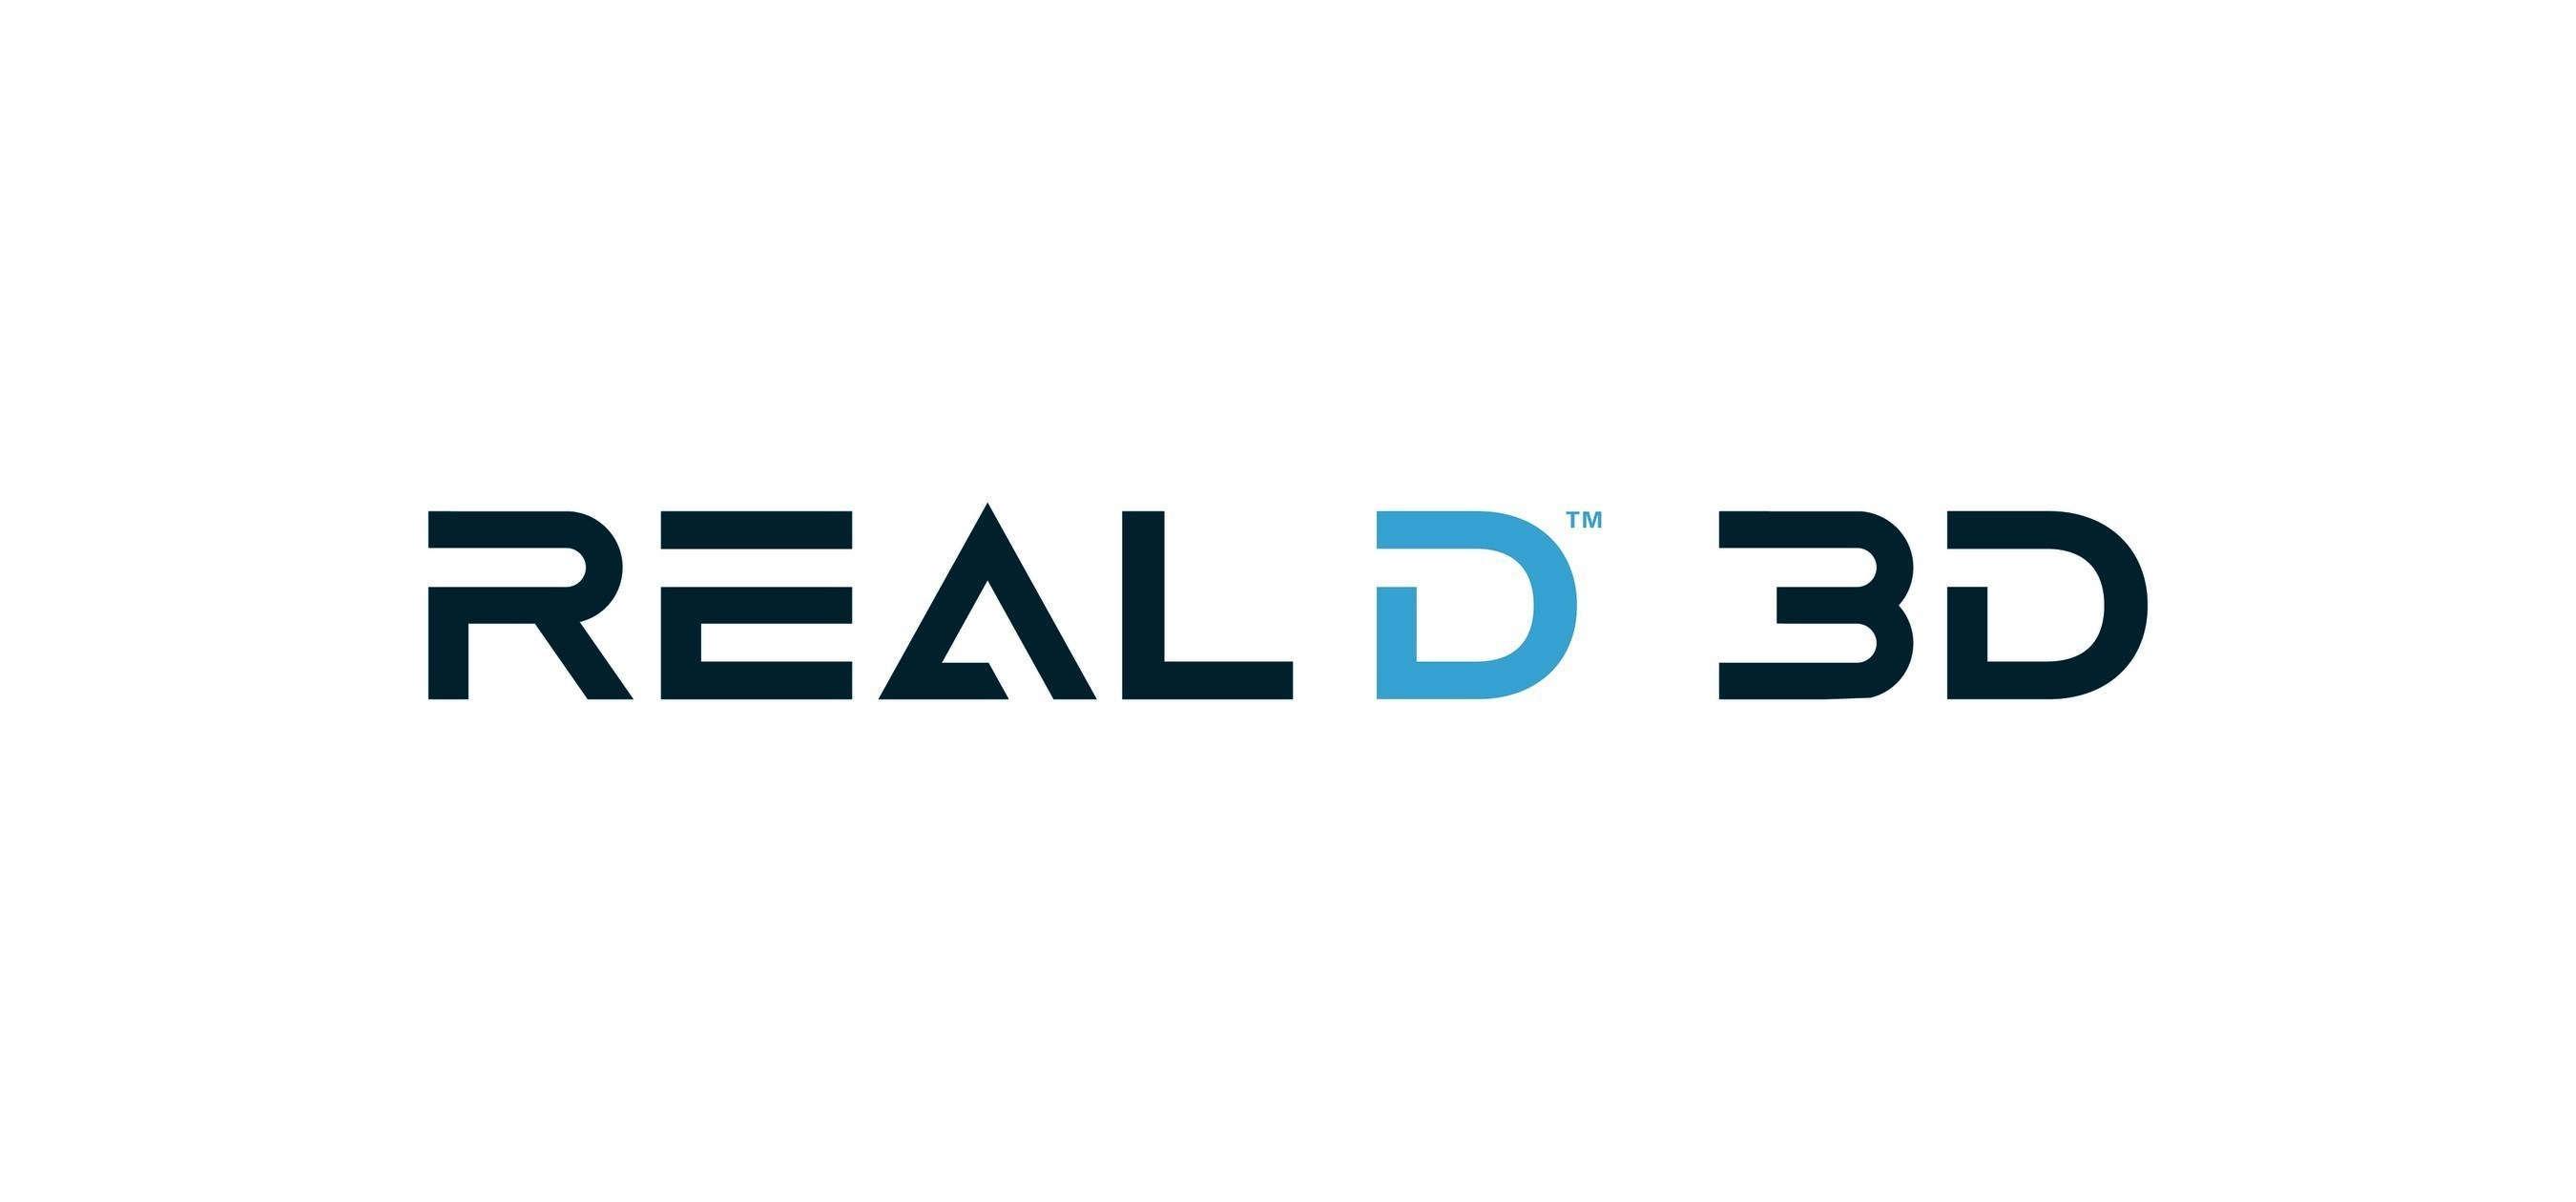 As the world's leading 3D cinema system, no company has been more instrumental in perfecting, promoting or providing premium quality 3D experiences to audiences worldwide than RealD.